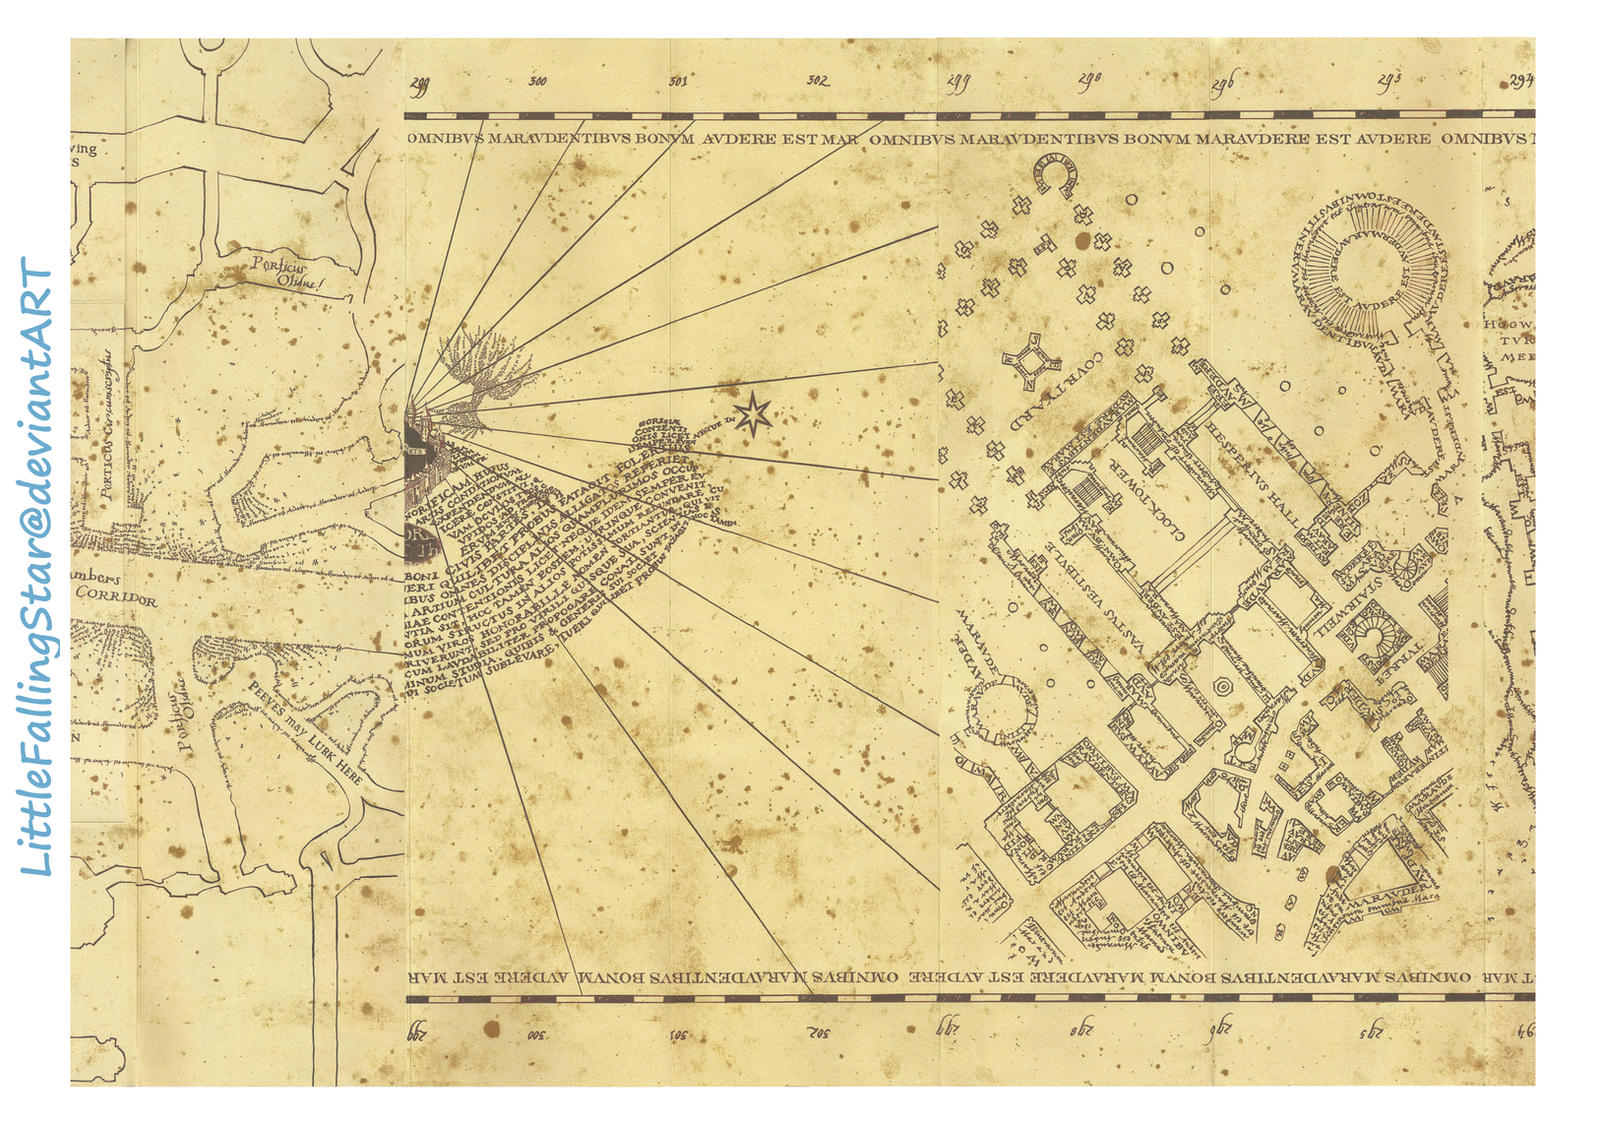 Simple Wallpaper Harry Potter Map - marauders_map_page_3_by_littlefallingstar-d69pa52  Best Photo Reference_366320.jpg